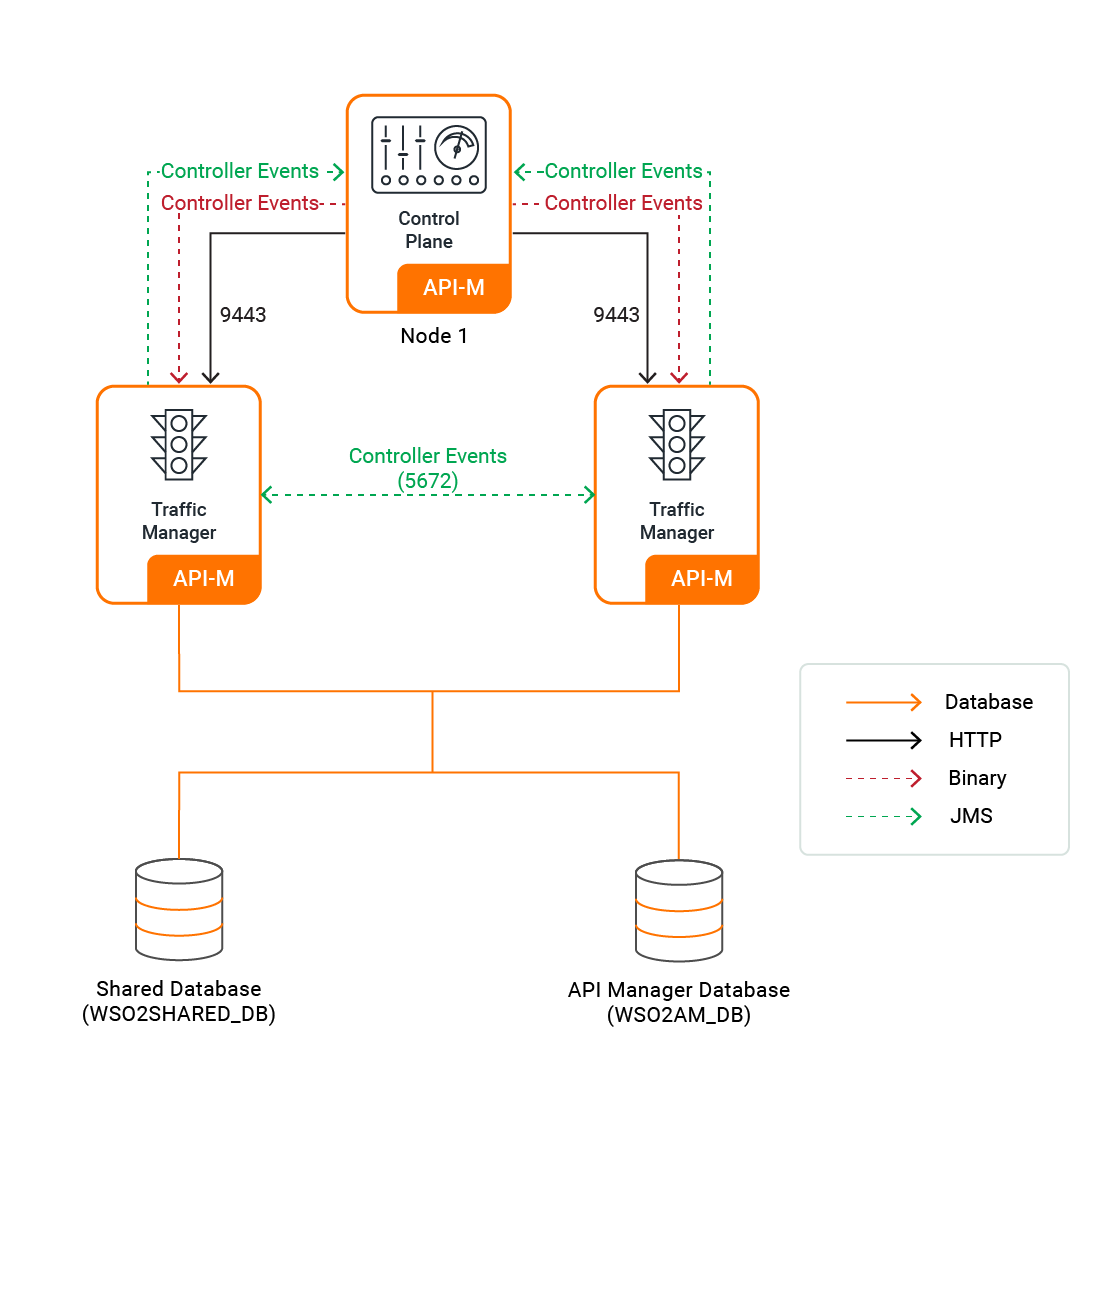 Traffic Manager Connections